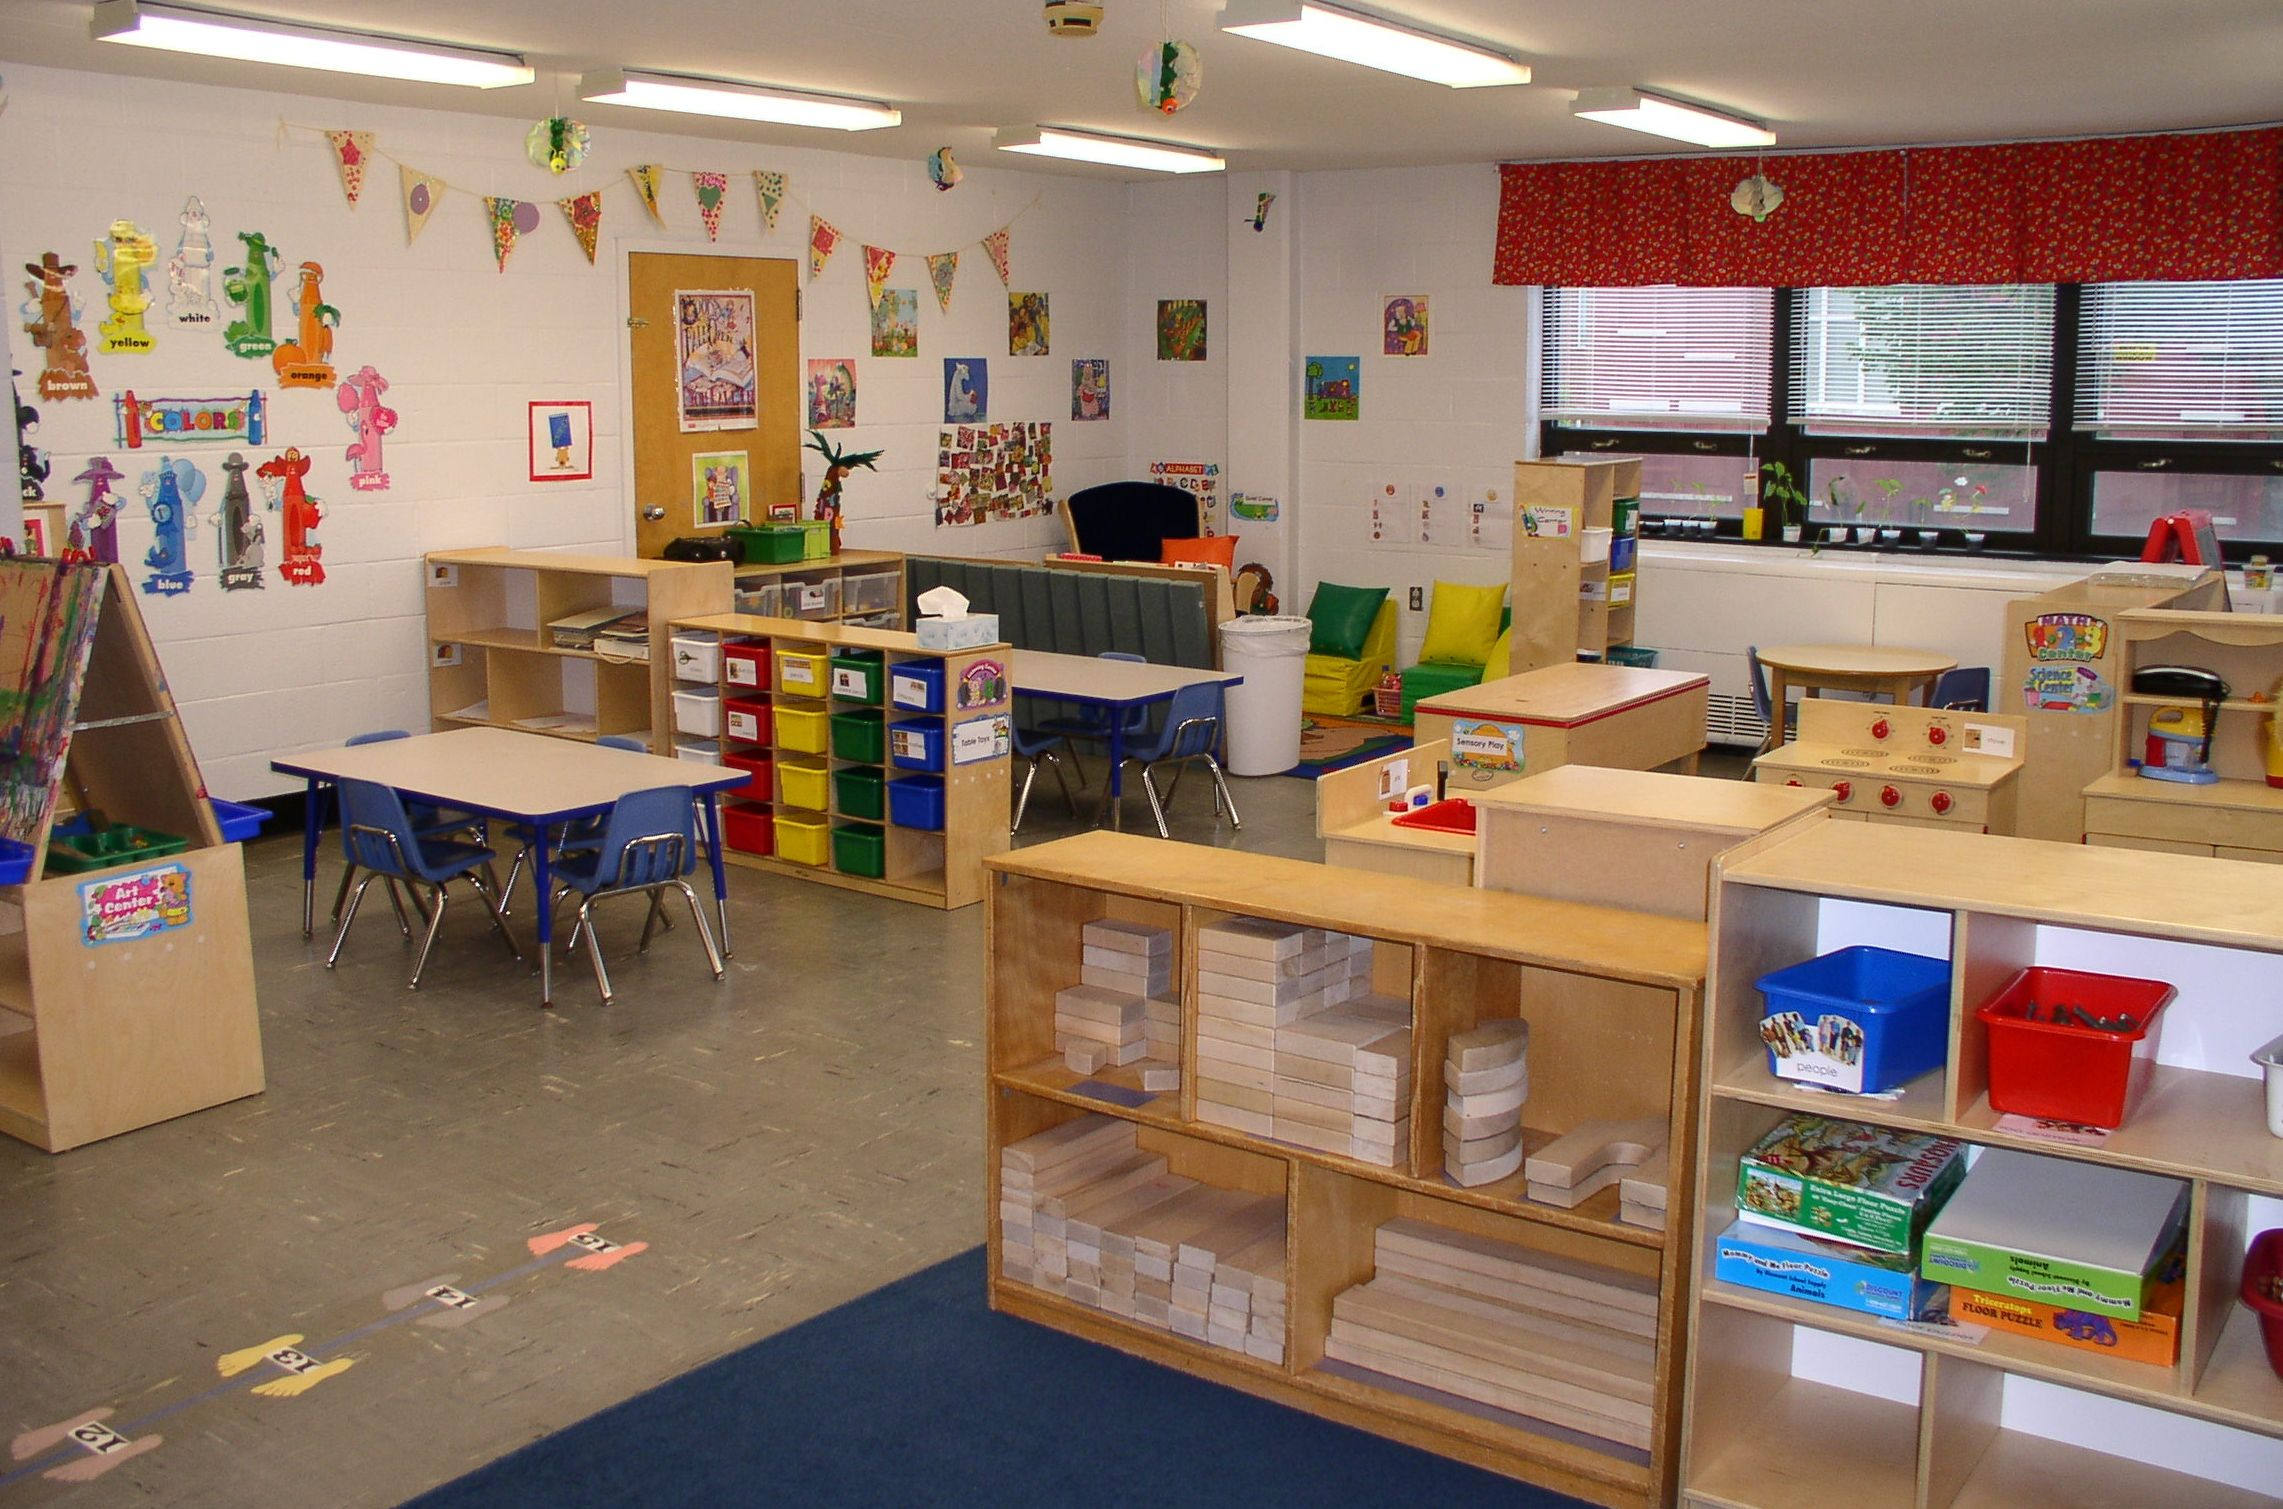 1000 images about professional work space on pinterest preschool classroom kindergarten classroom and classroom - Classroom Design Ideas